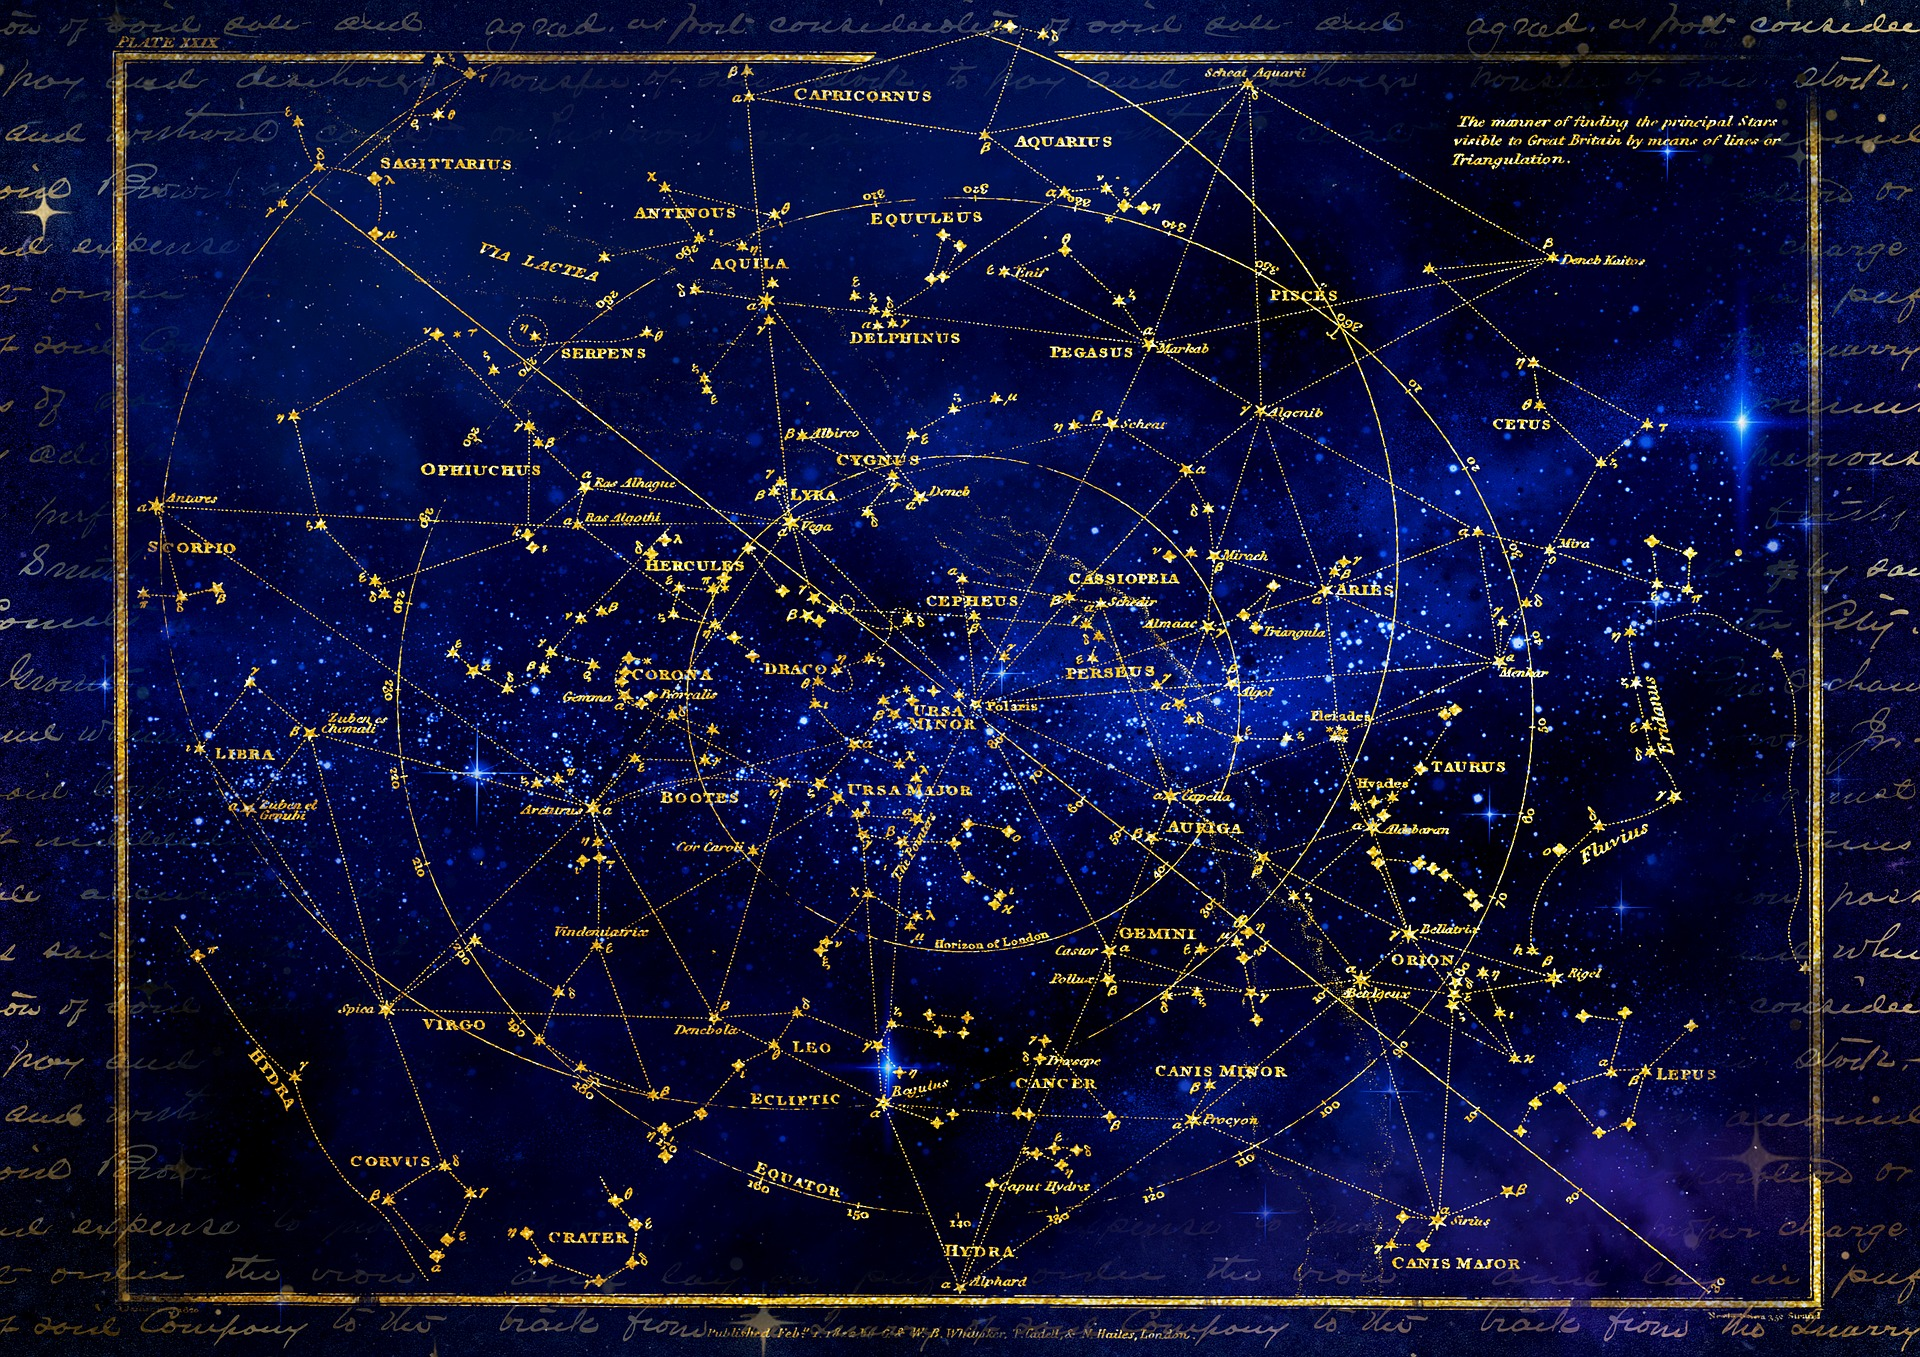 Astrological view of the night sky with stars and planets